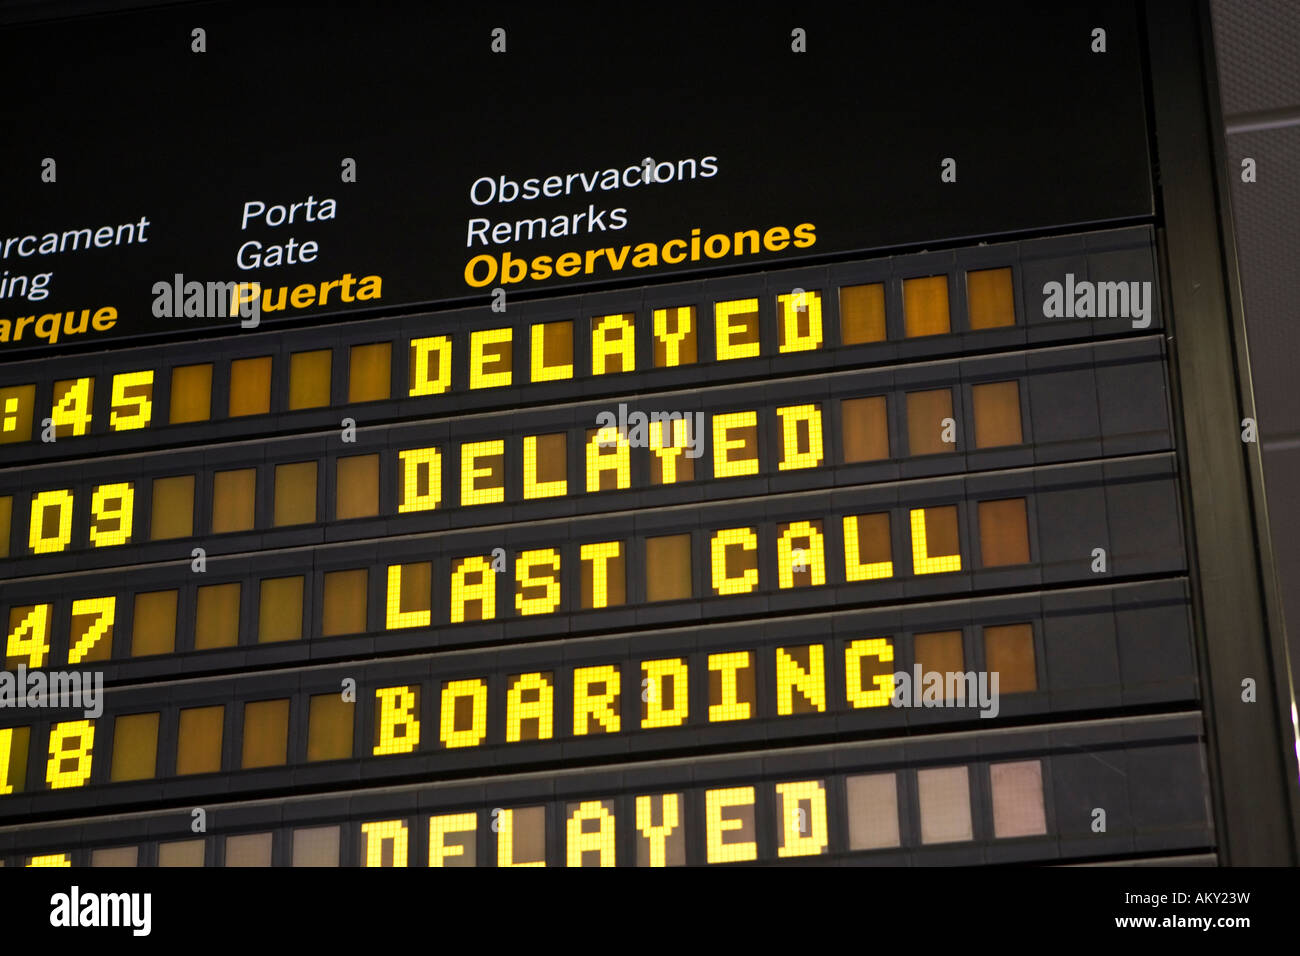 Information of flight delays in english language, Ibiza, Baleares, Spain - Stock Image